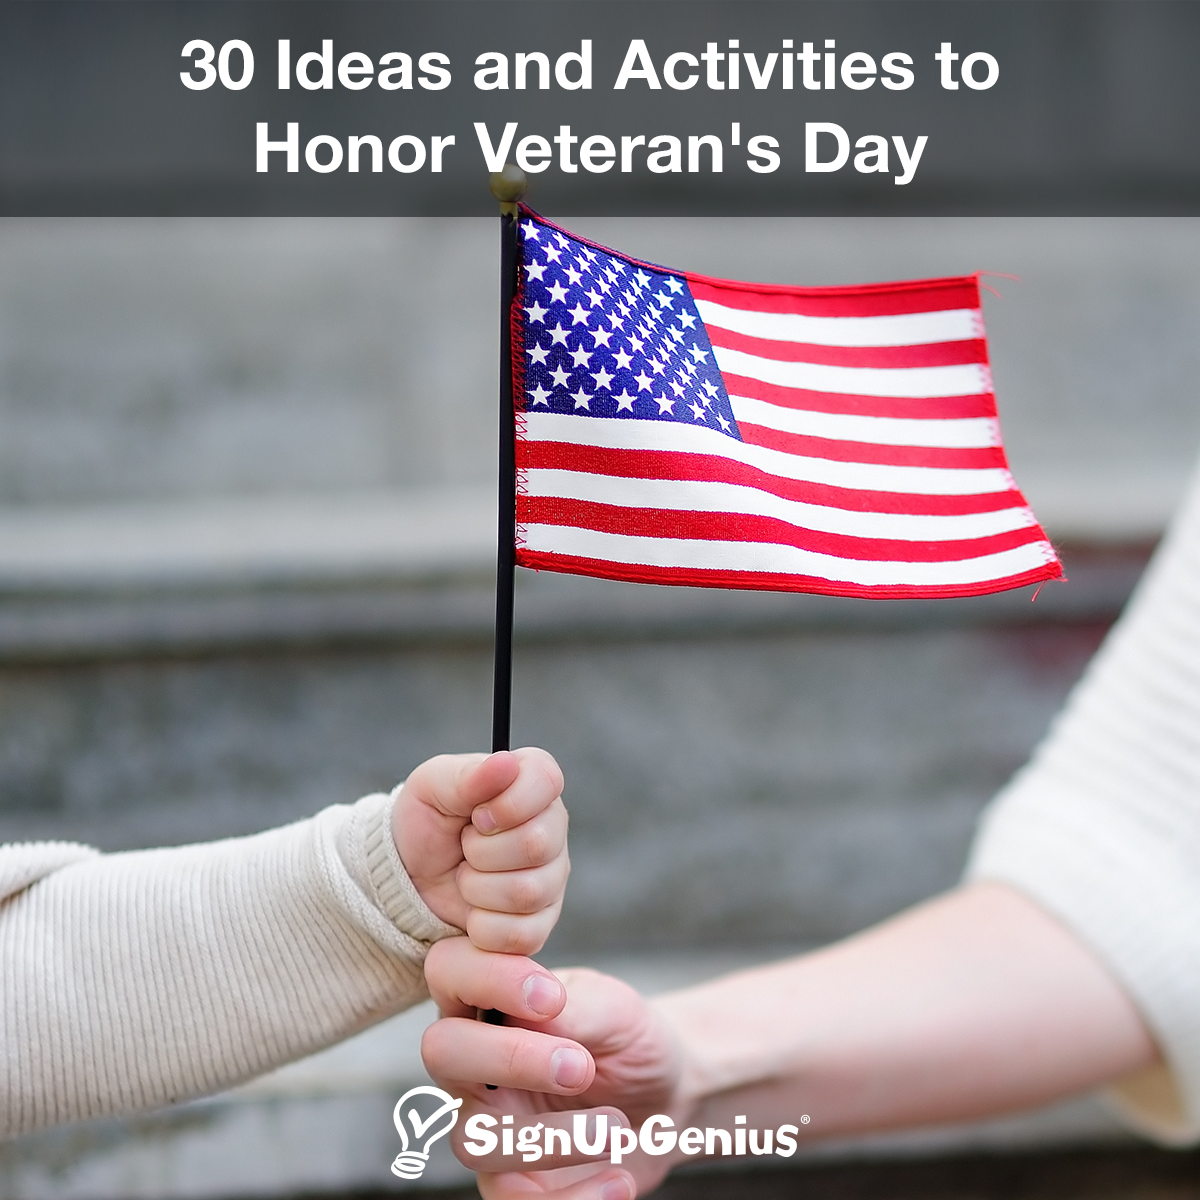 30 Activities and Ideas to Honor Veterans Day